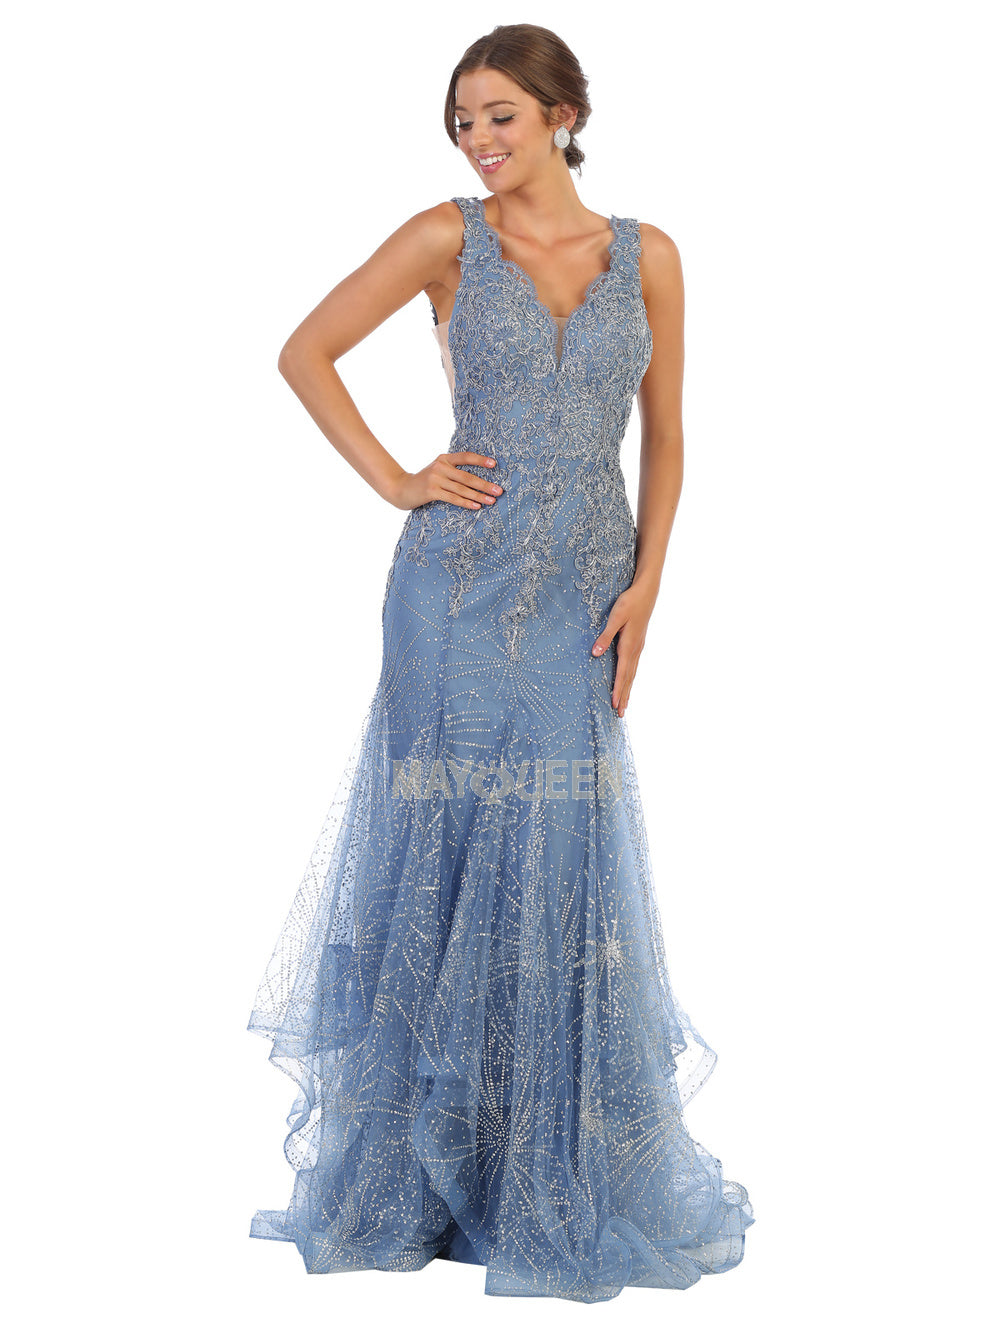 MQ 7786 - Mermaid Prom Gown with Embroidered Lace Bodice & Glitter Print Tulle Skirt